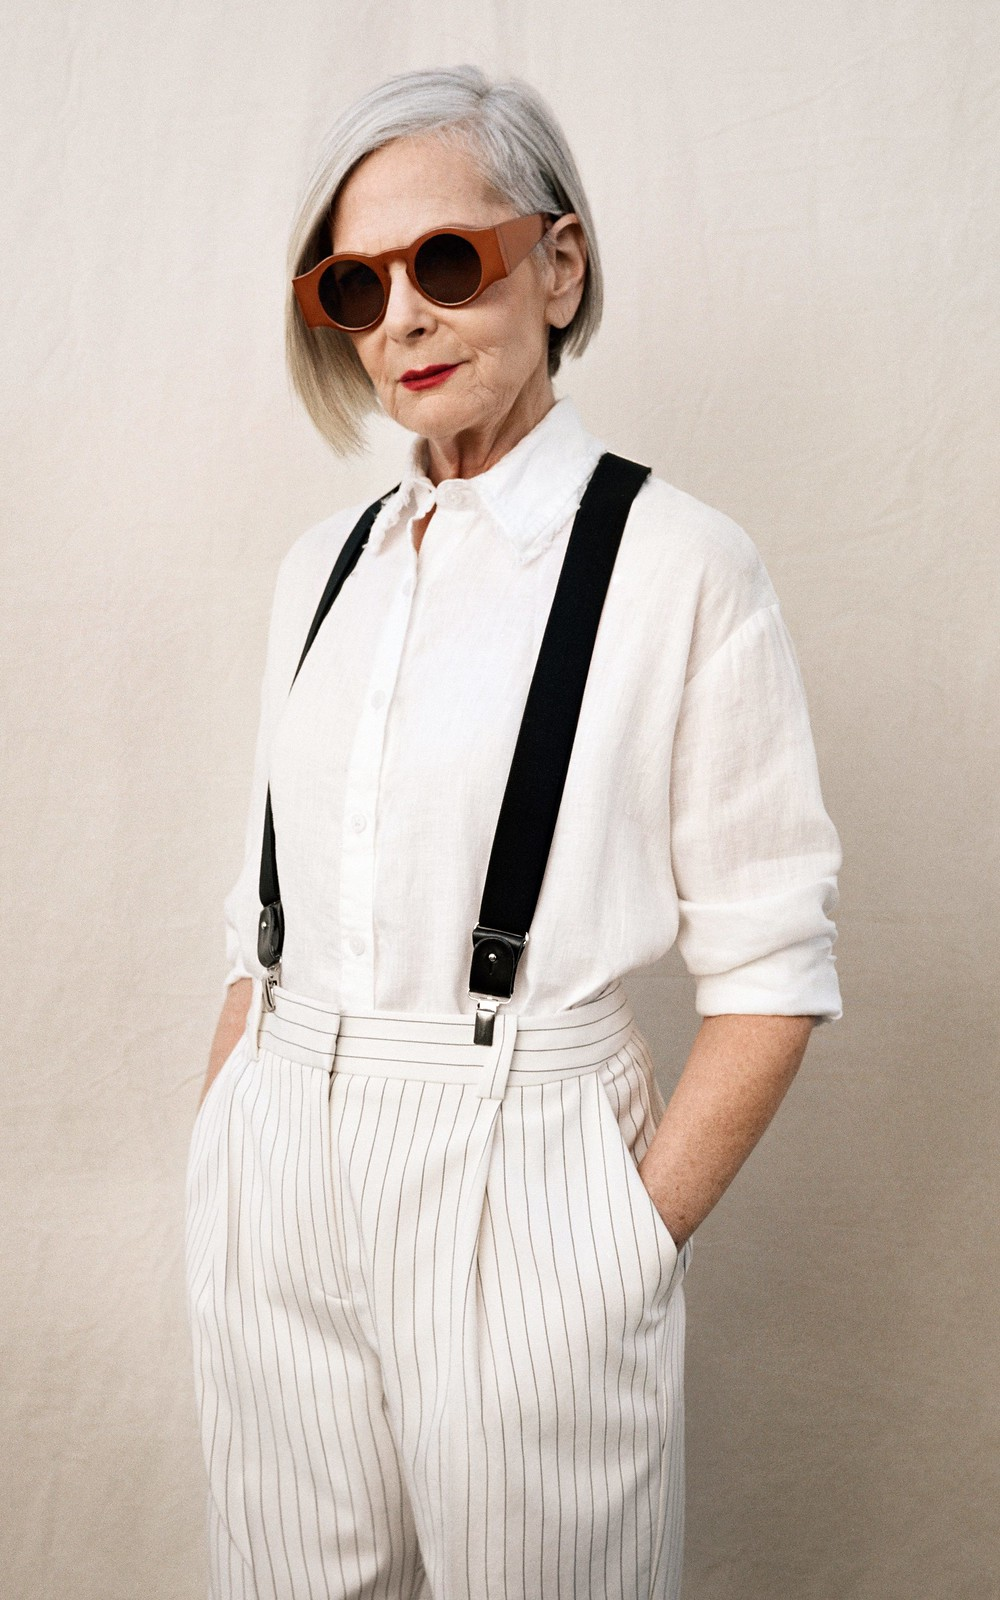 Over 40 Bloggers Who Have Modelled For Brands - Lyn of Accidental Icon for Mango